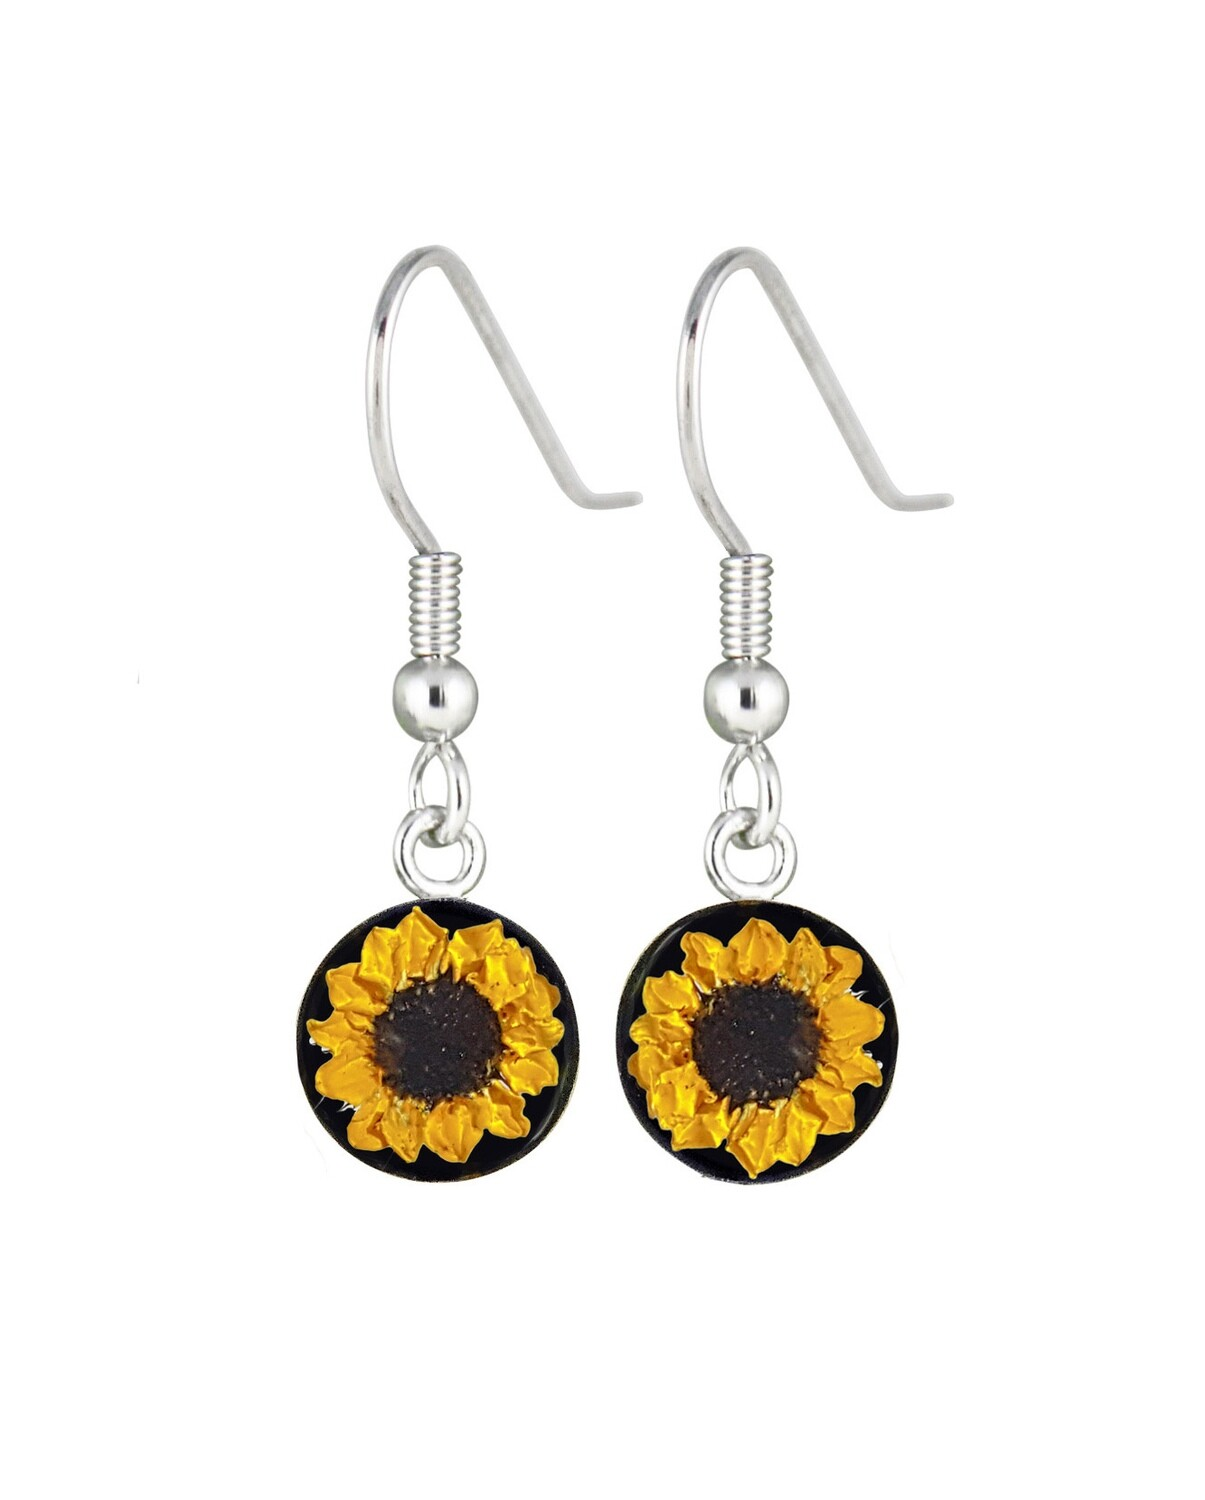 Sunflower, Small Circle Earrings, Black Background.